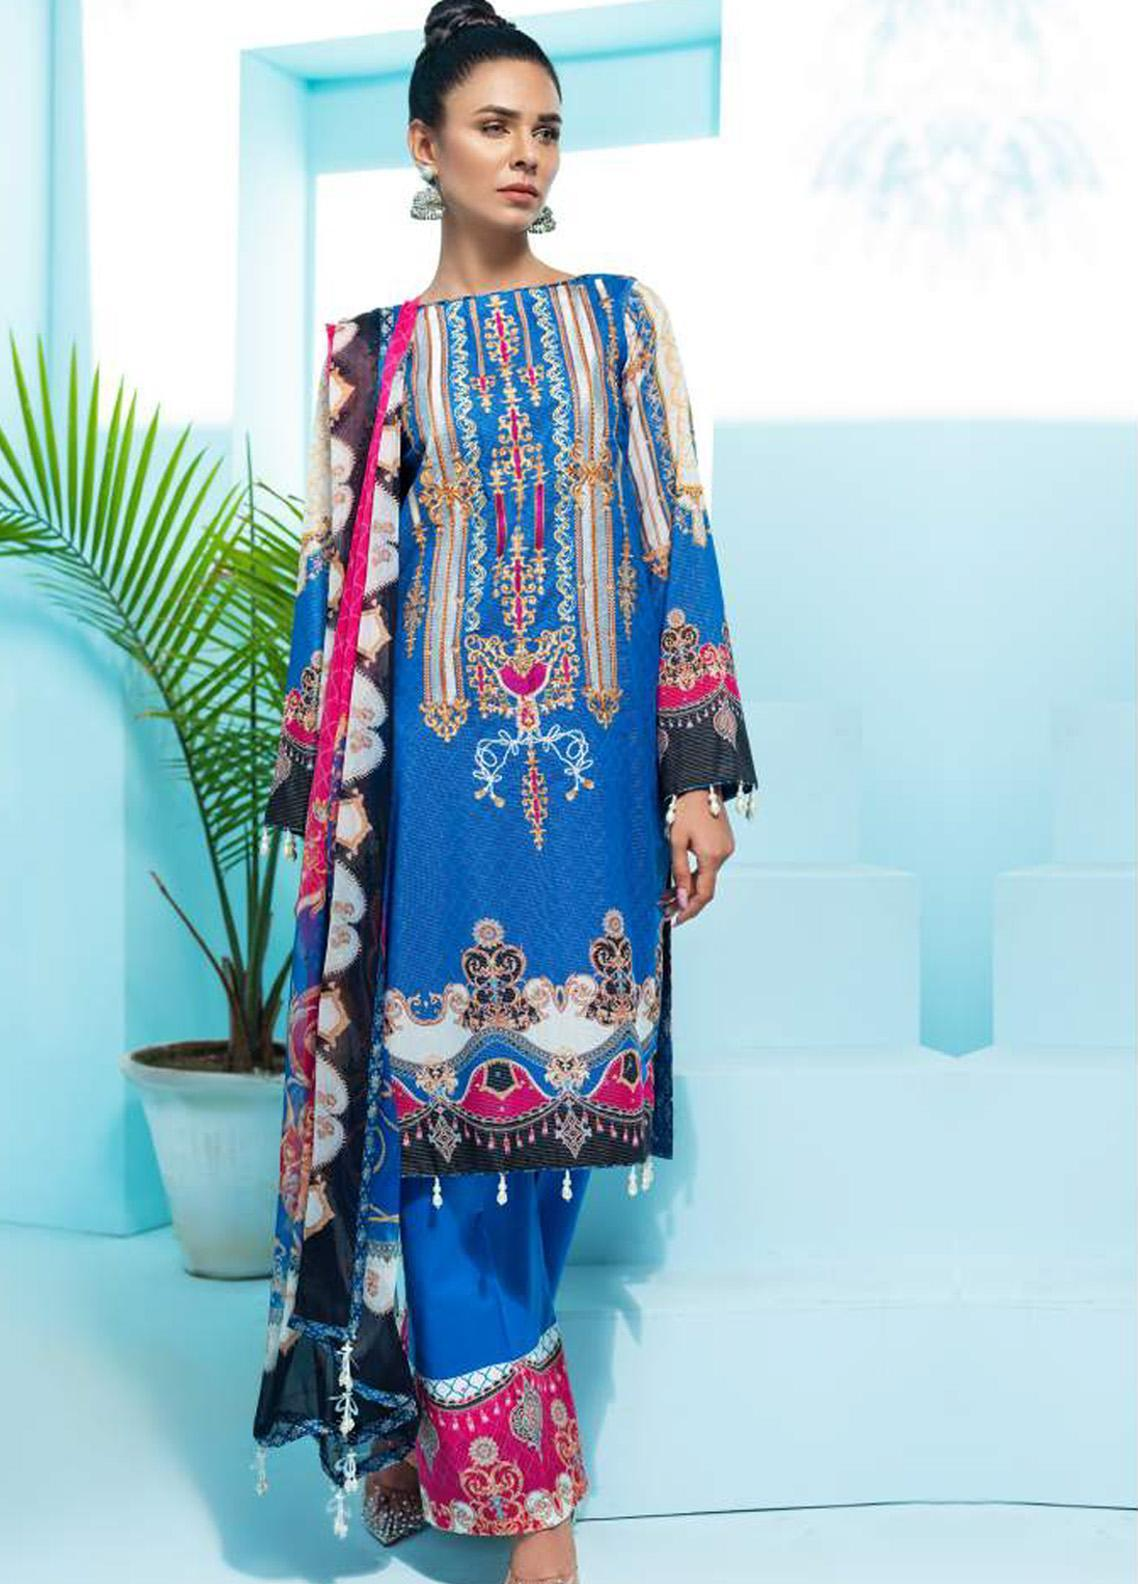 Florence by Rang Rasiya Embroidered Lawn Unstitched 3 Piece Suit RR20SF F542 - Spring / Summer Collection